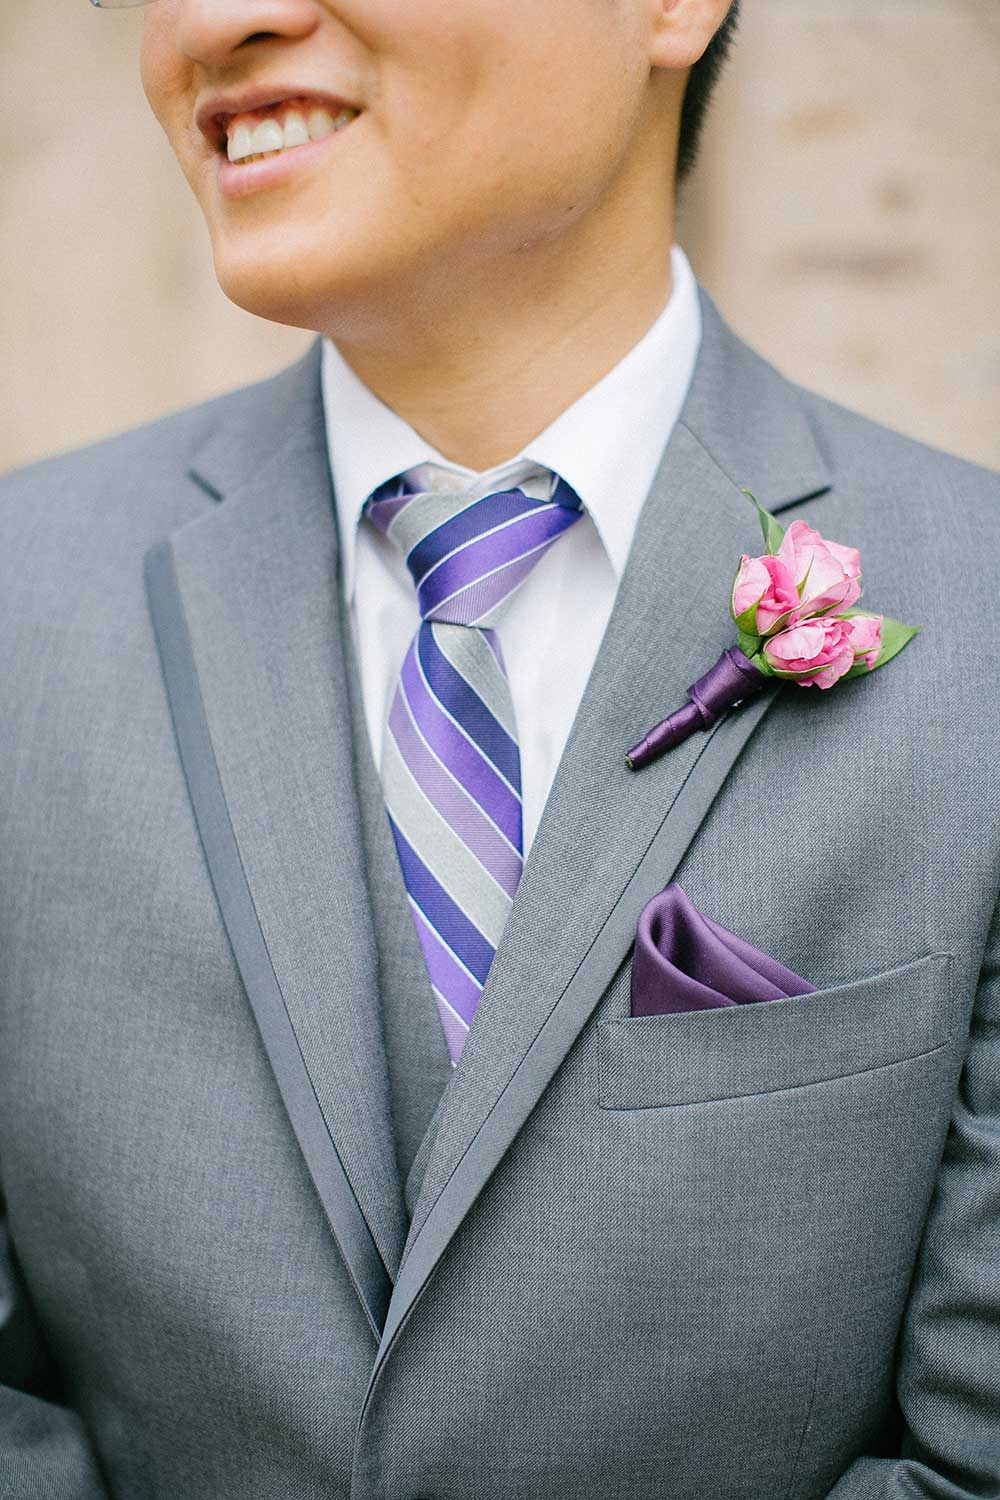 Groomsmen-in-grey-suit-with-a-purple-pocket-square-and-a-light-pink ...